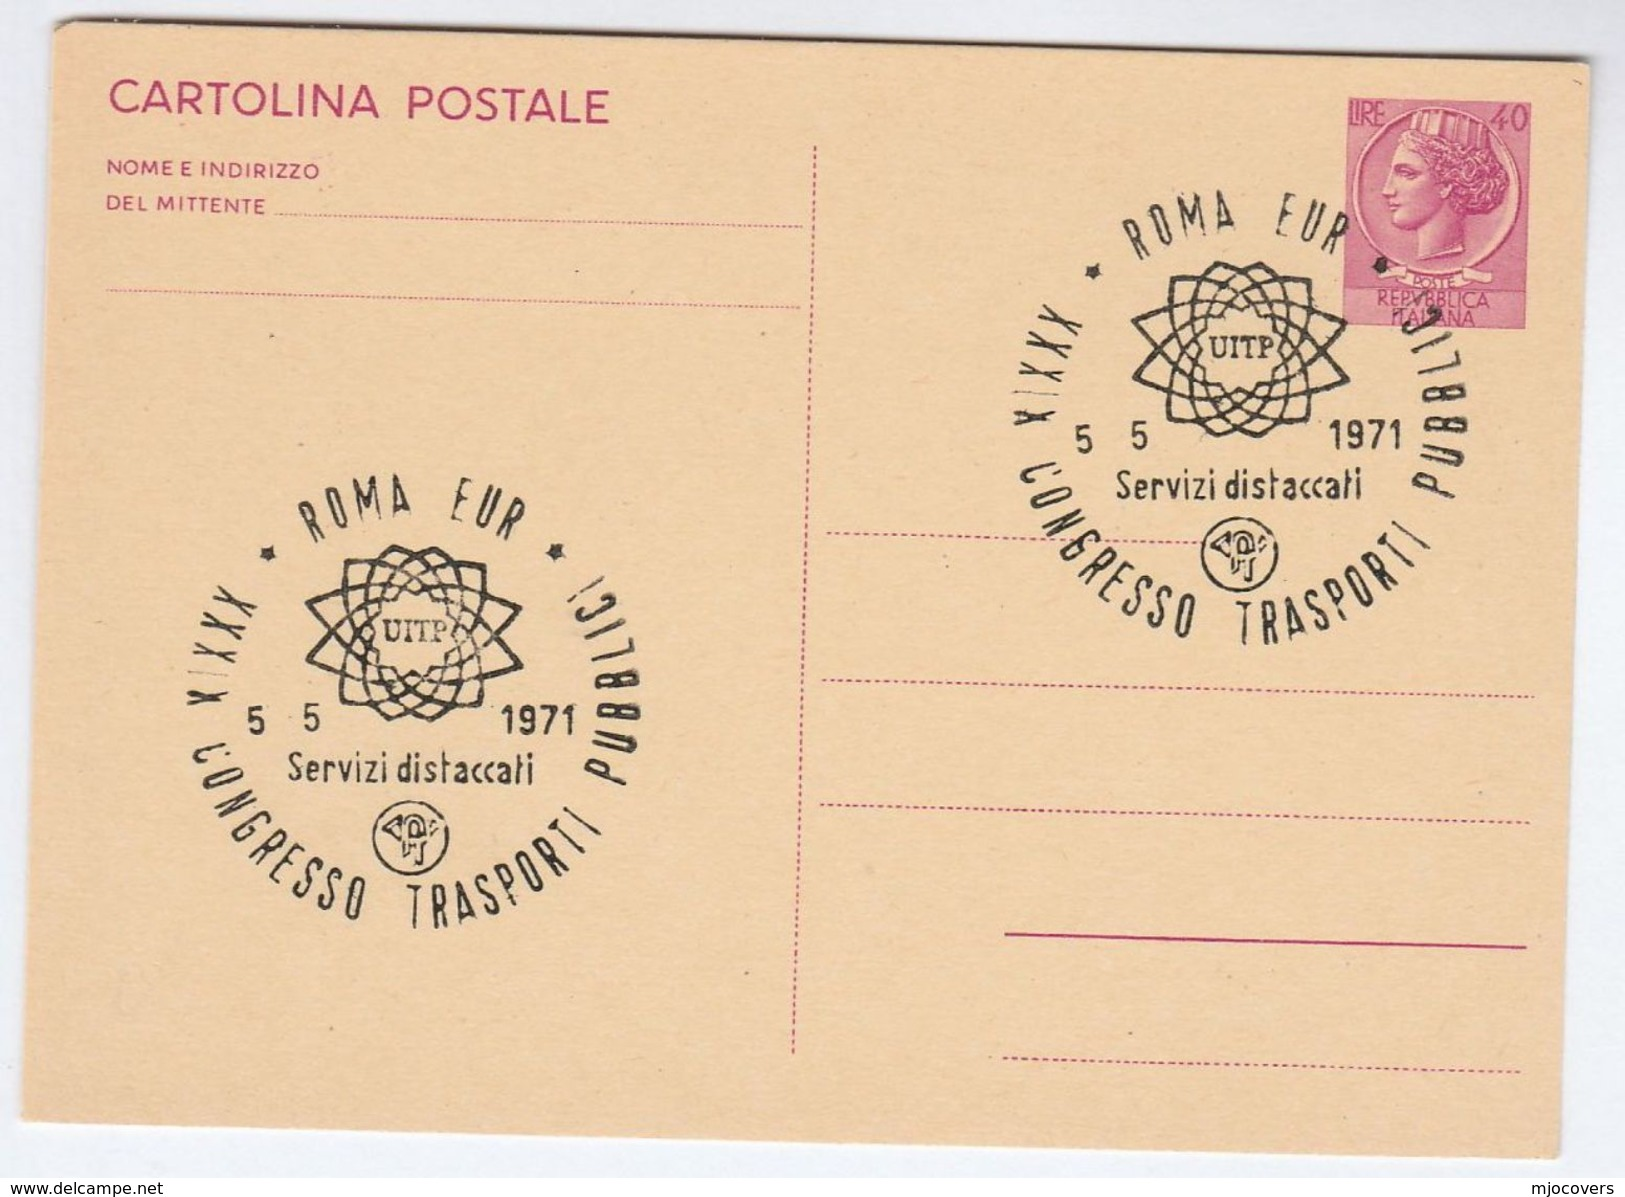 1971 Rome PUBLIC TRANSPORT CONGRESS UITP EVENT COVER Postal Stationery Card Italy Stamps - Bussen